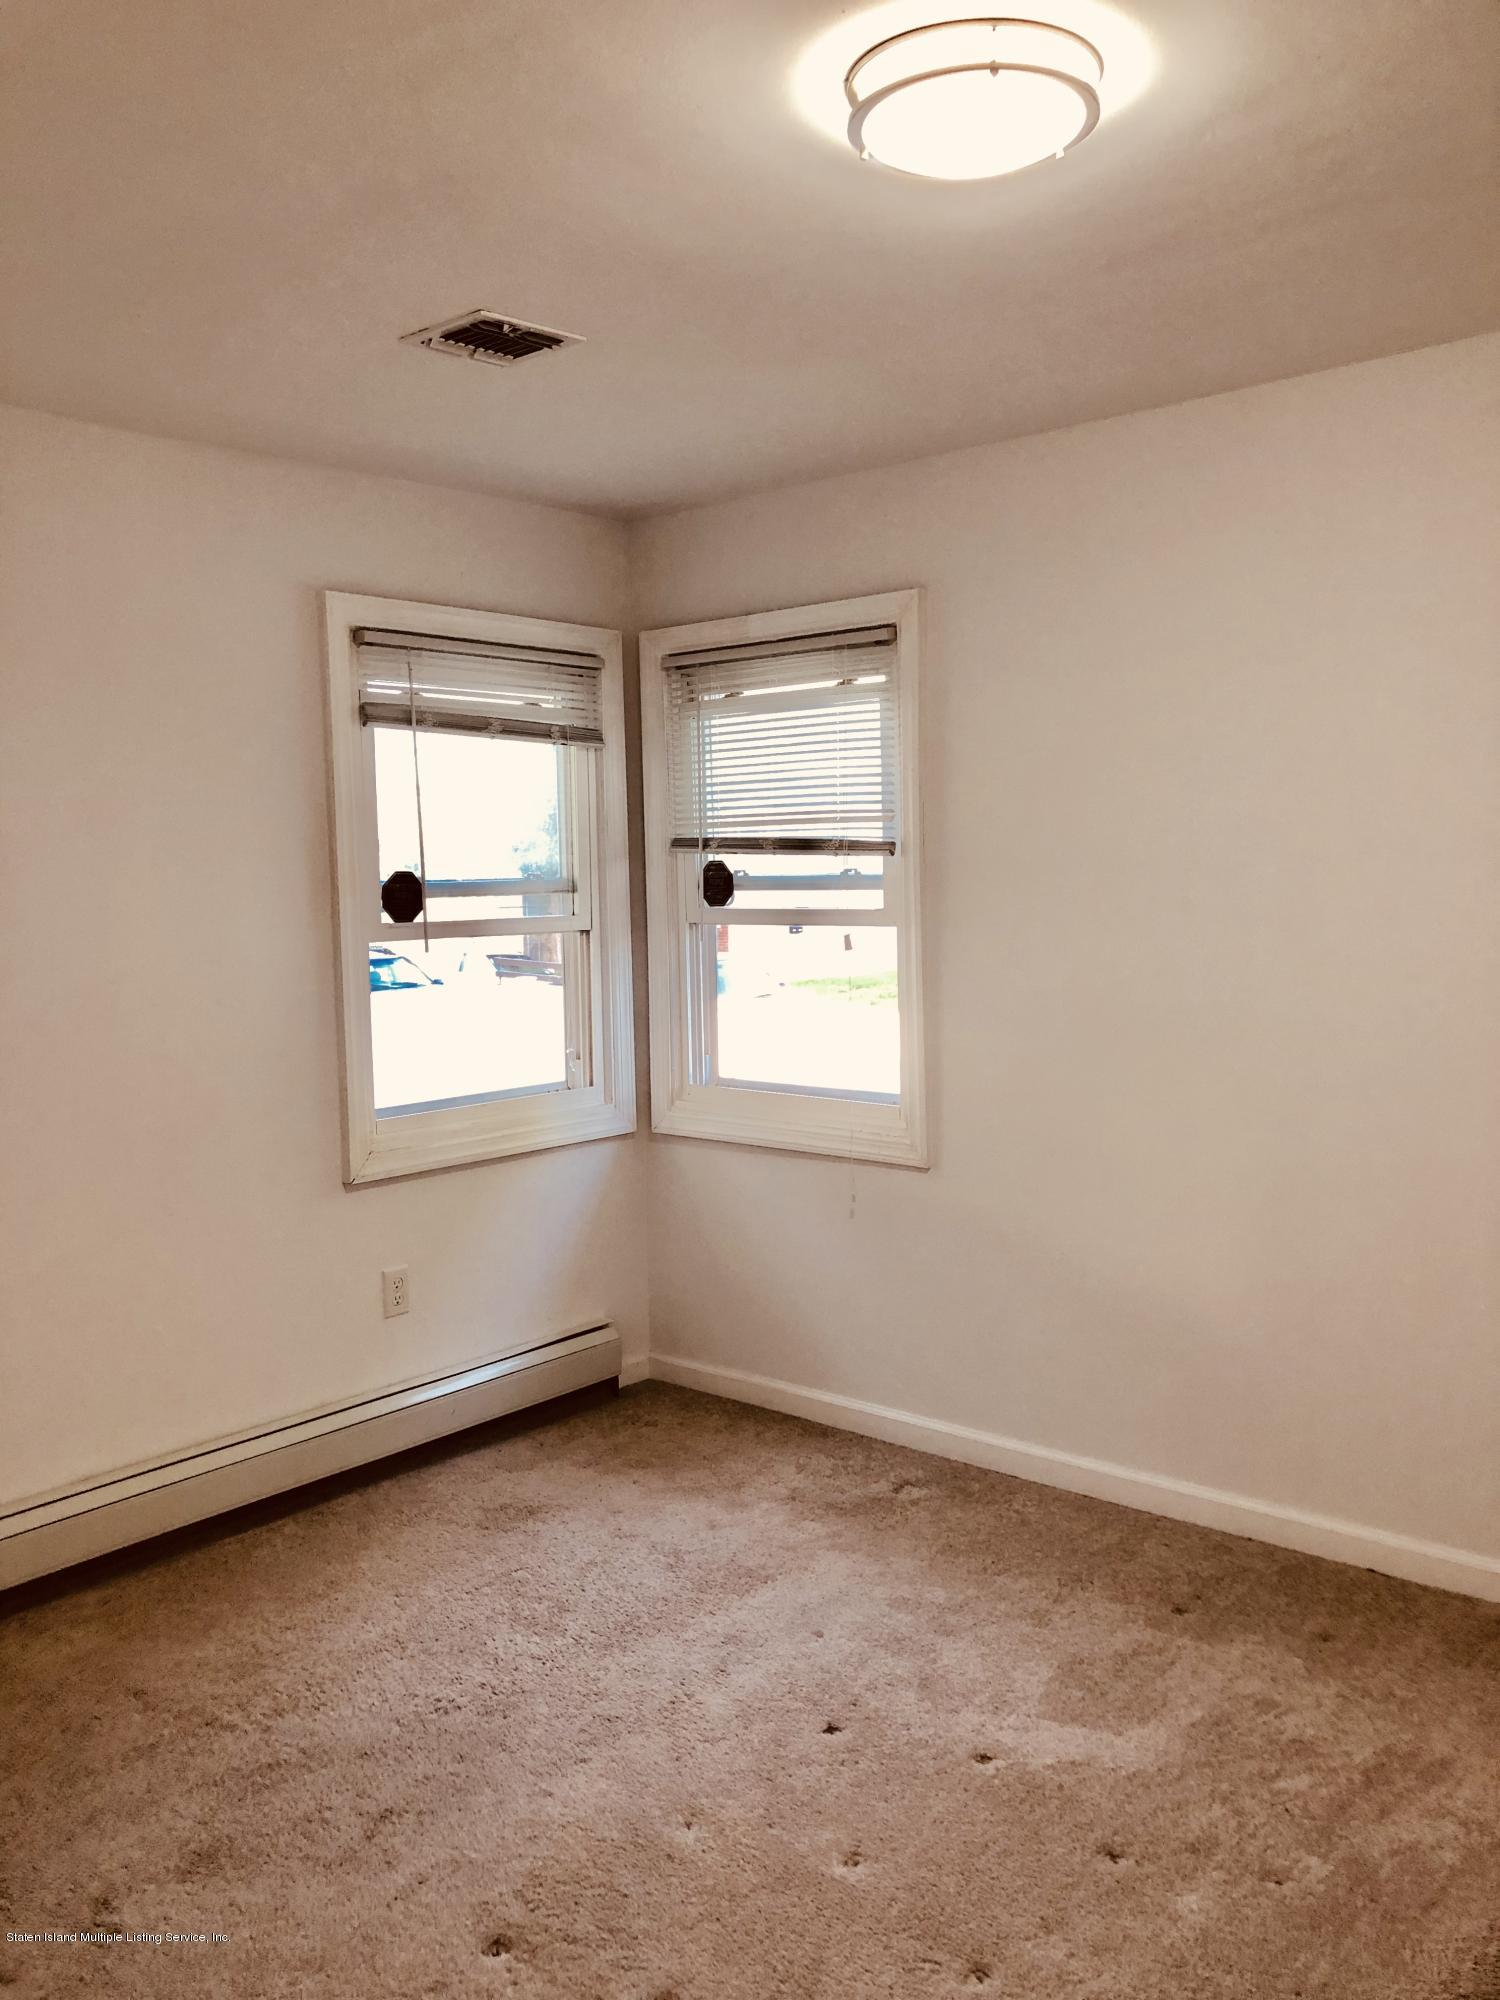 #2 167 Ebbitts Street,Staten Island,New York,10301,United States,3 Bedrooms Bedrooms,6 Rooms Rooms,1 BathroomBathrooms,Res-Rental,Ebbitts,1129305